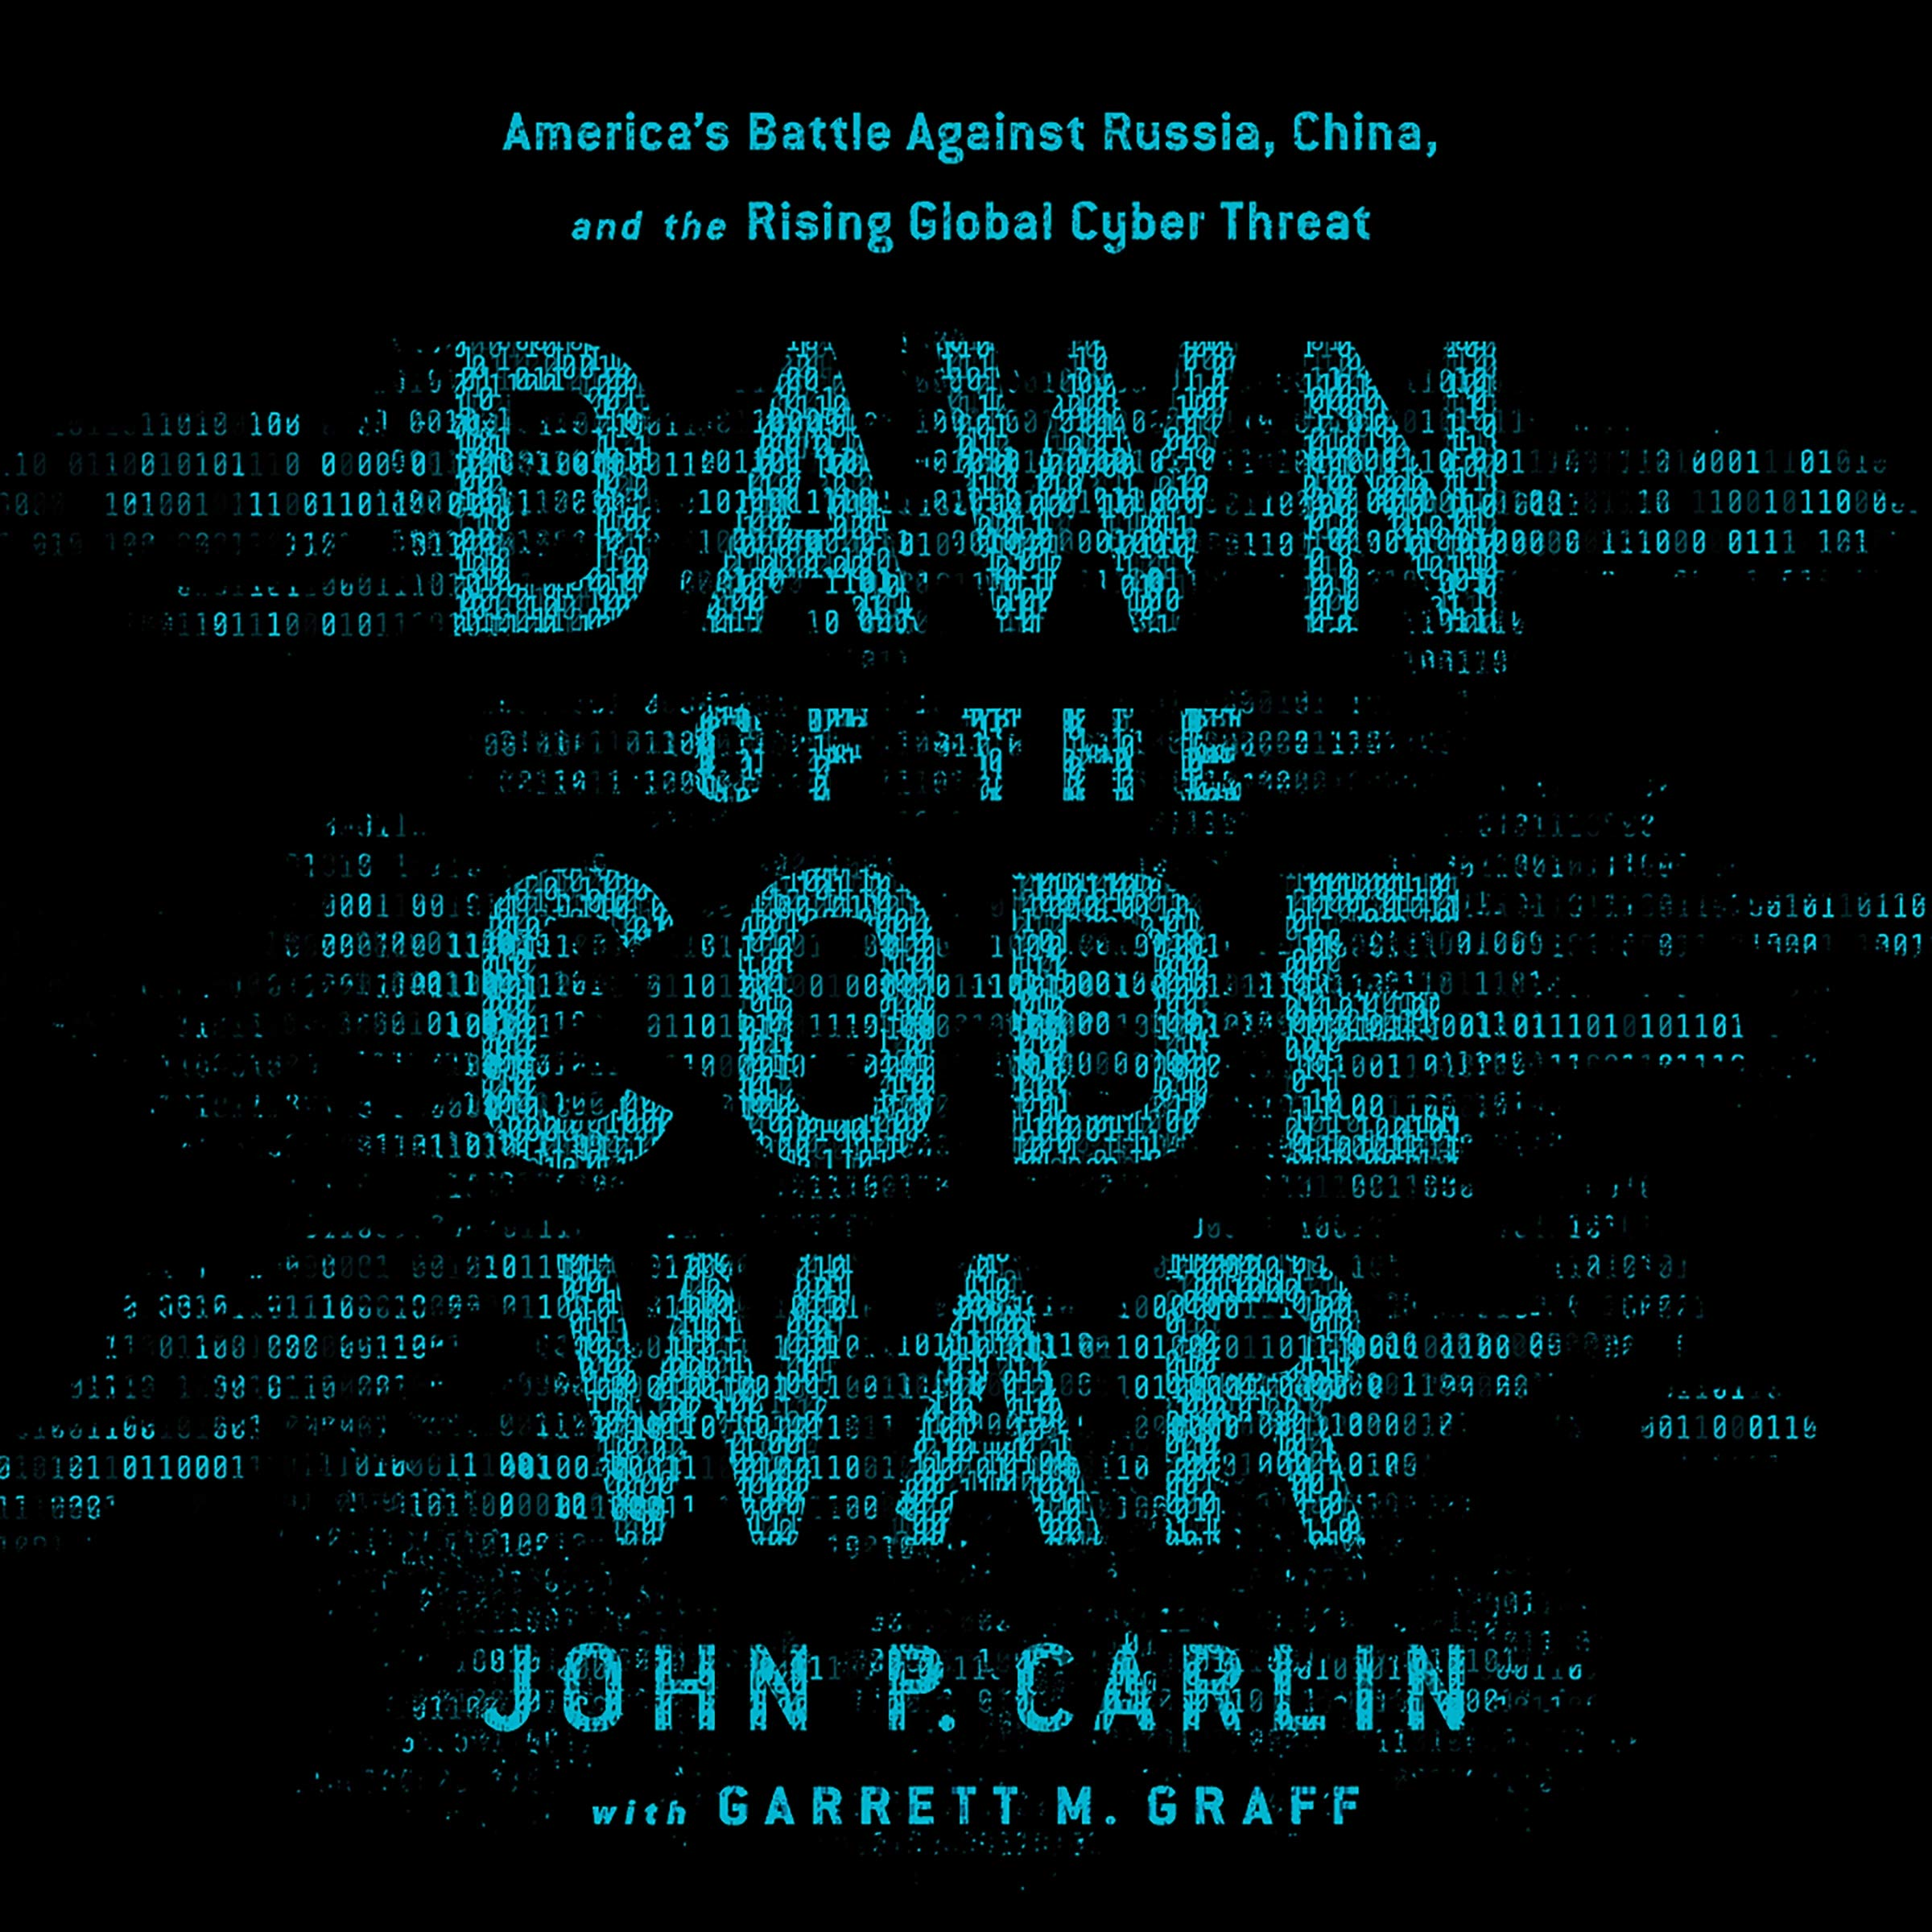 Dawn of The Code War - John P. Carlin, Garrett M. Graff